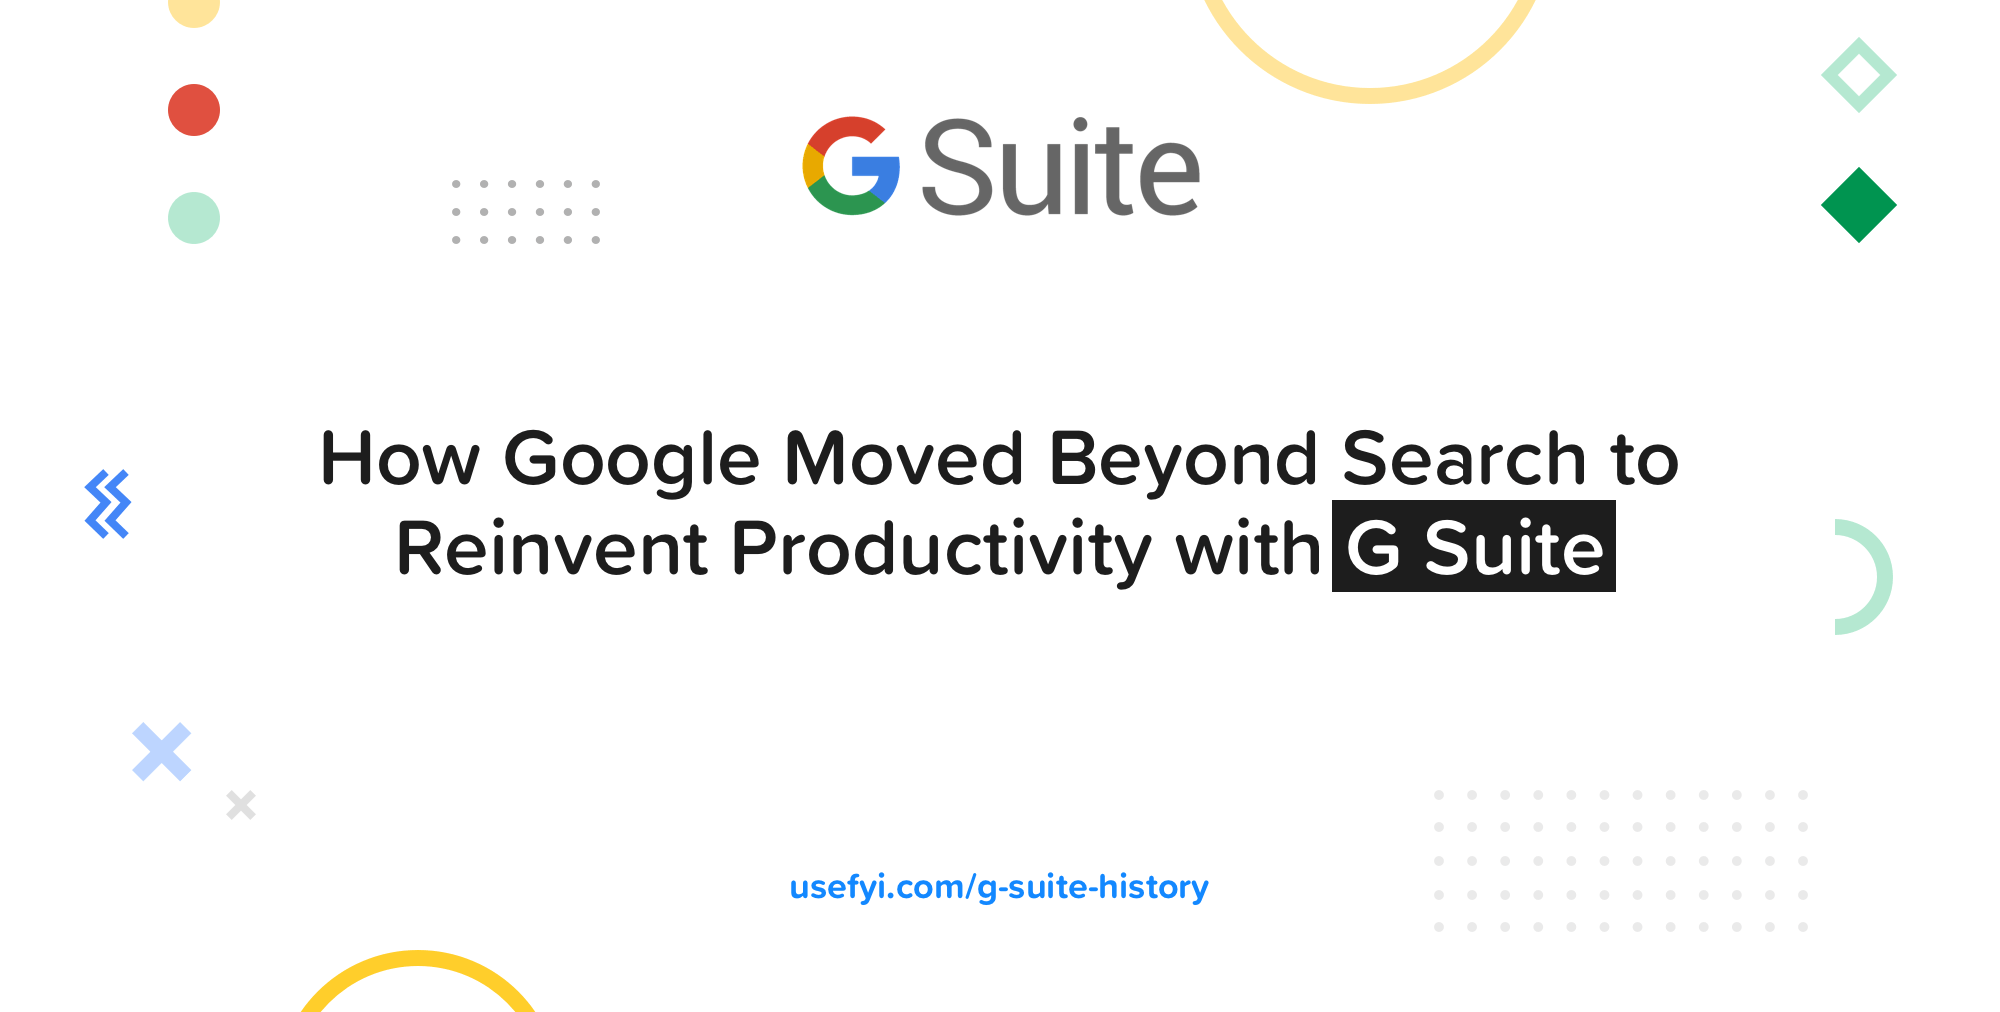 G Suite History